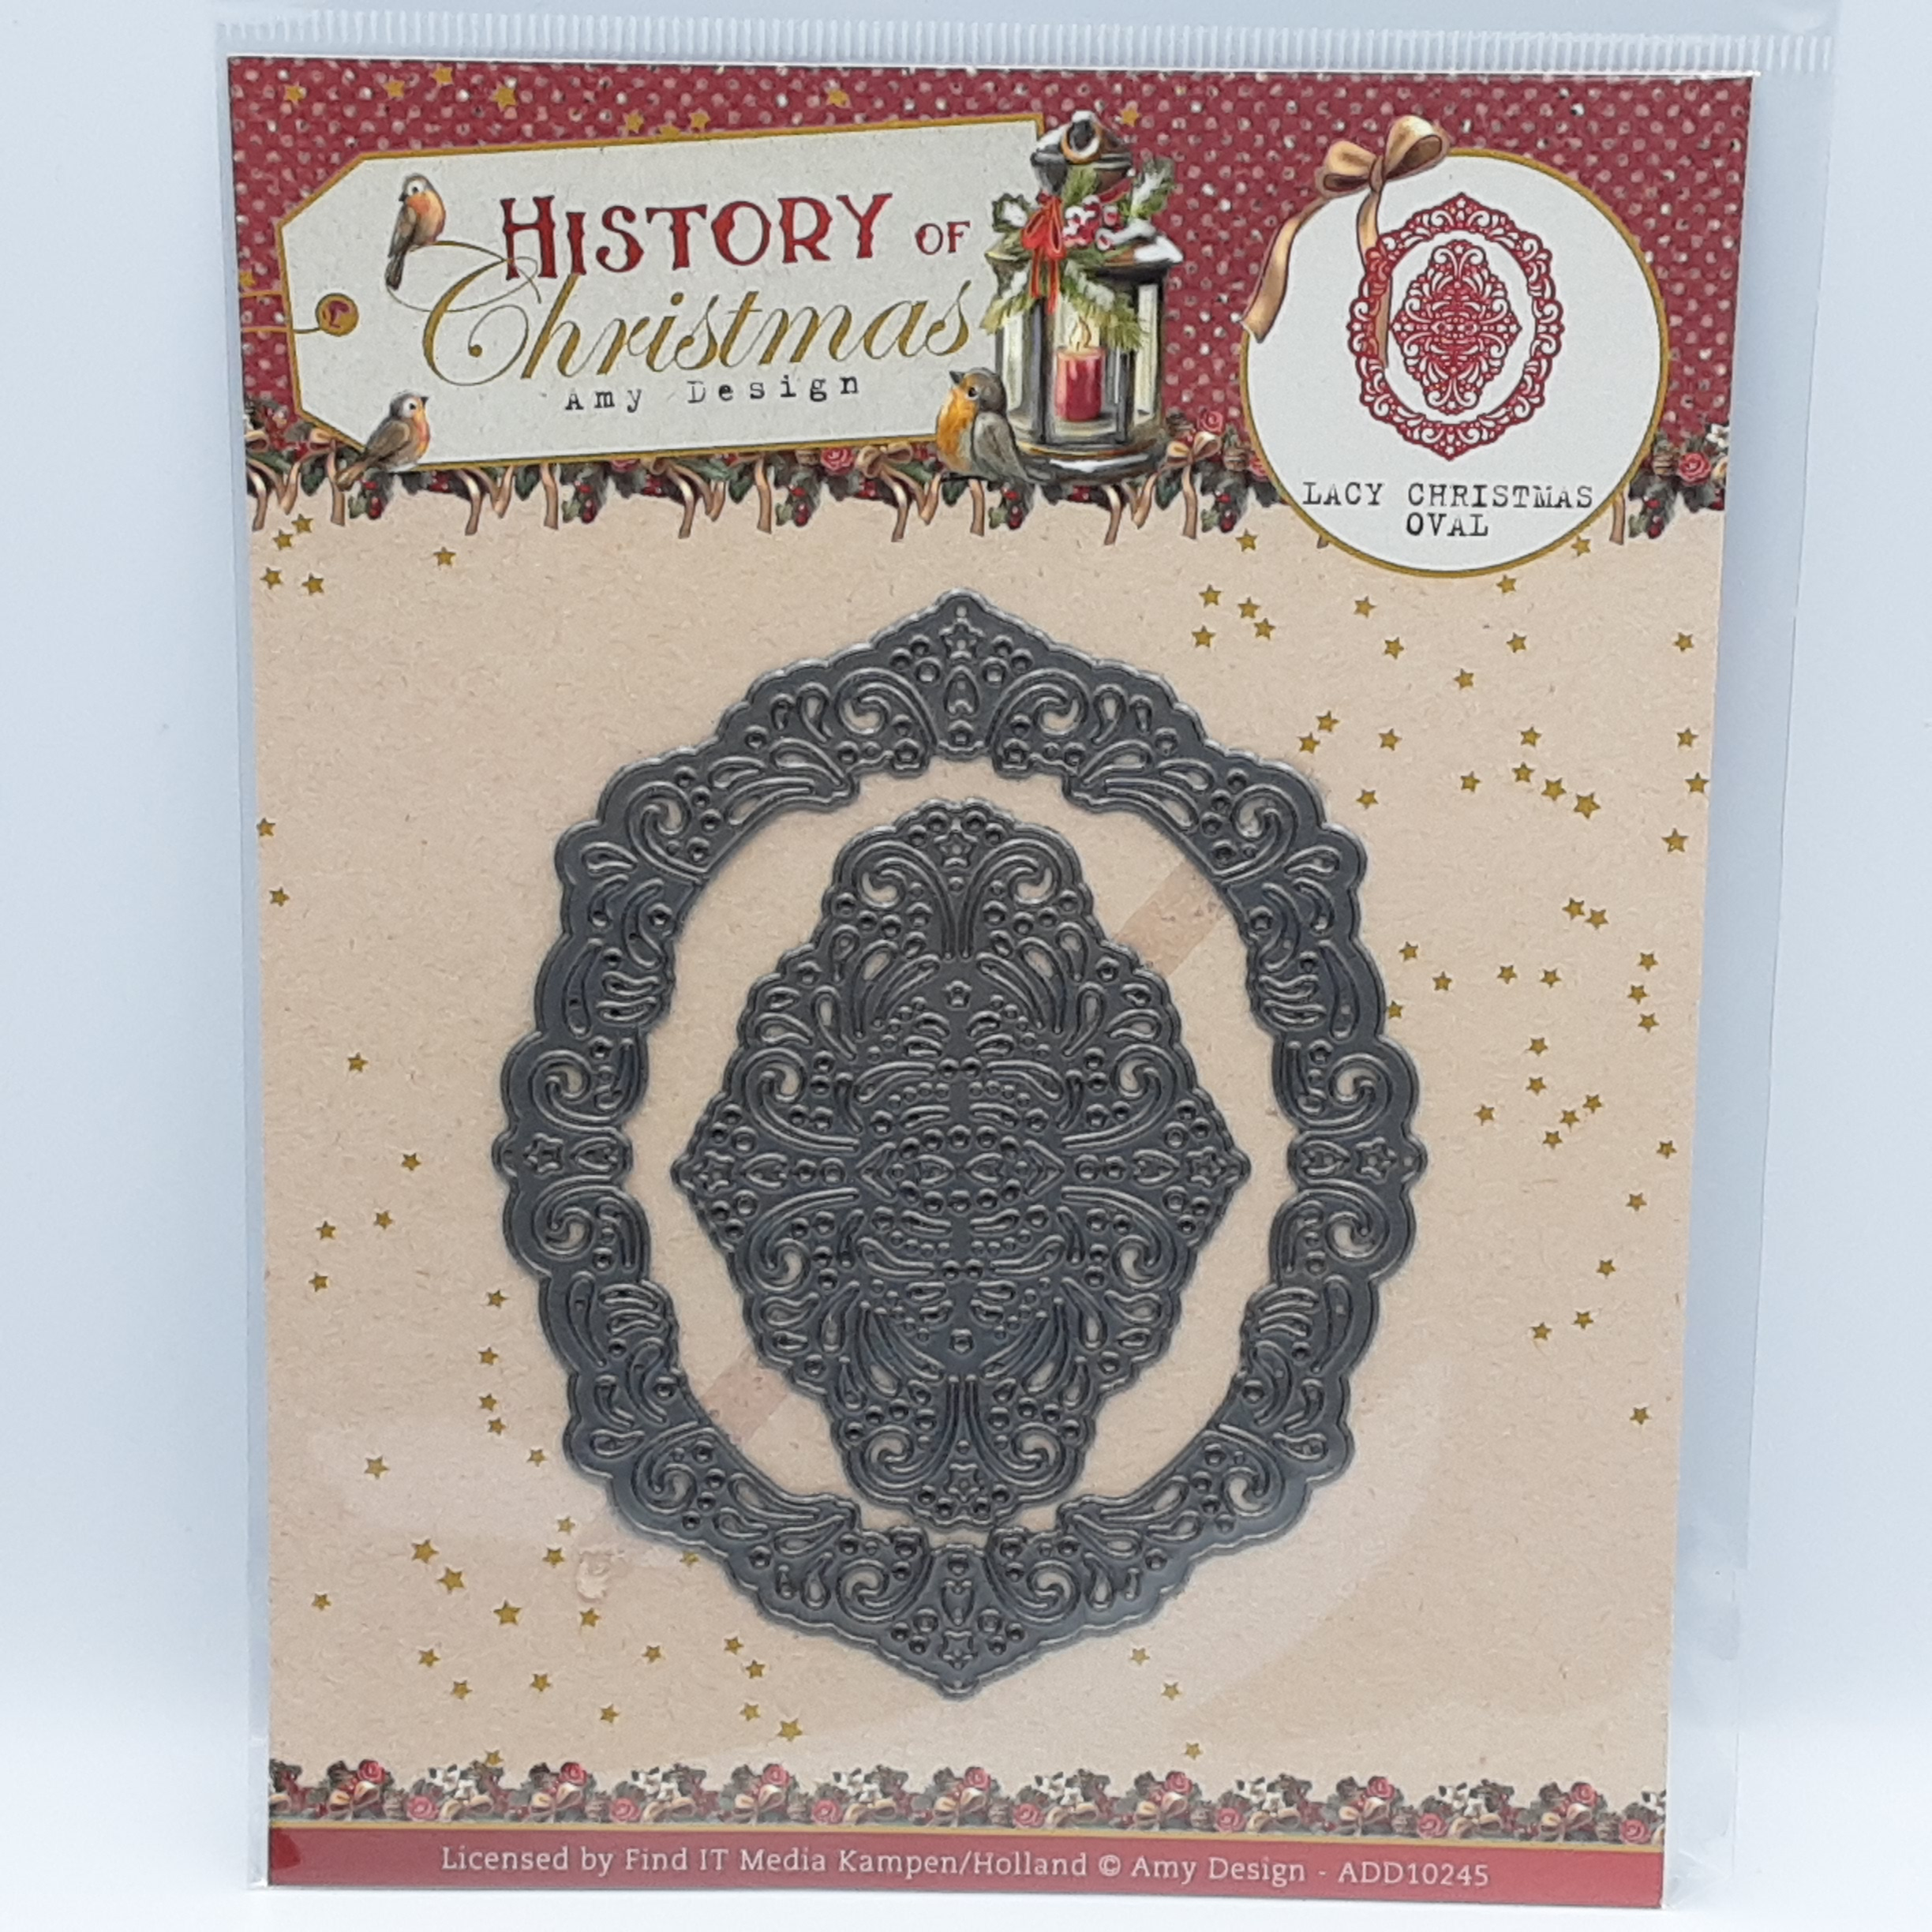 Lacy christmas oval History of christmas stansmal